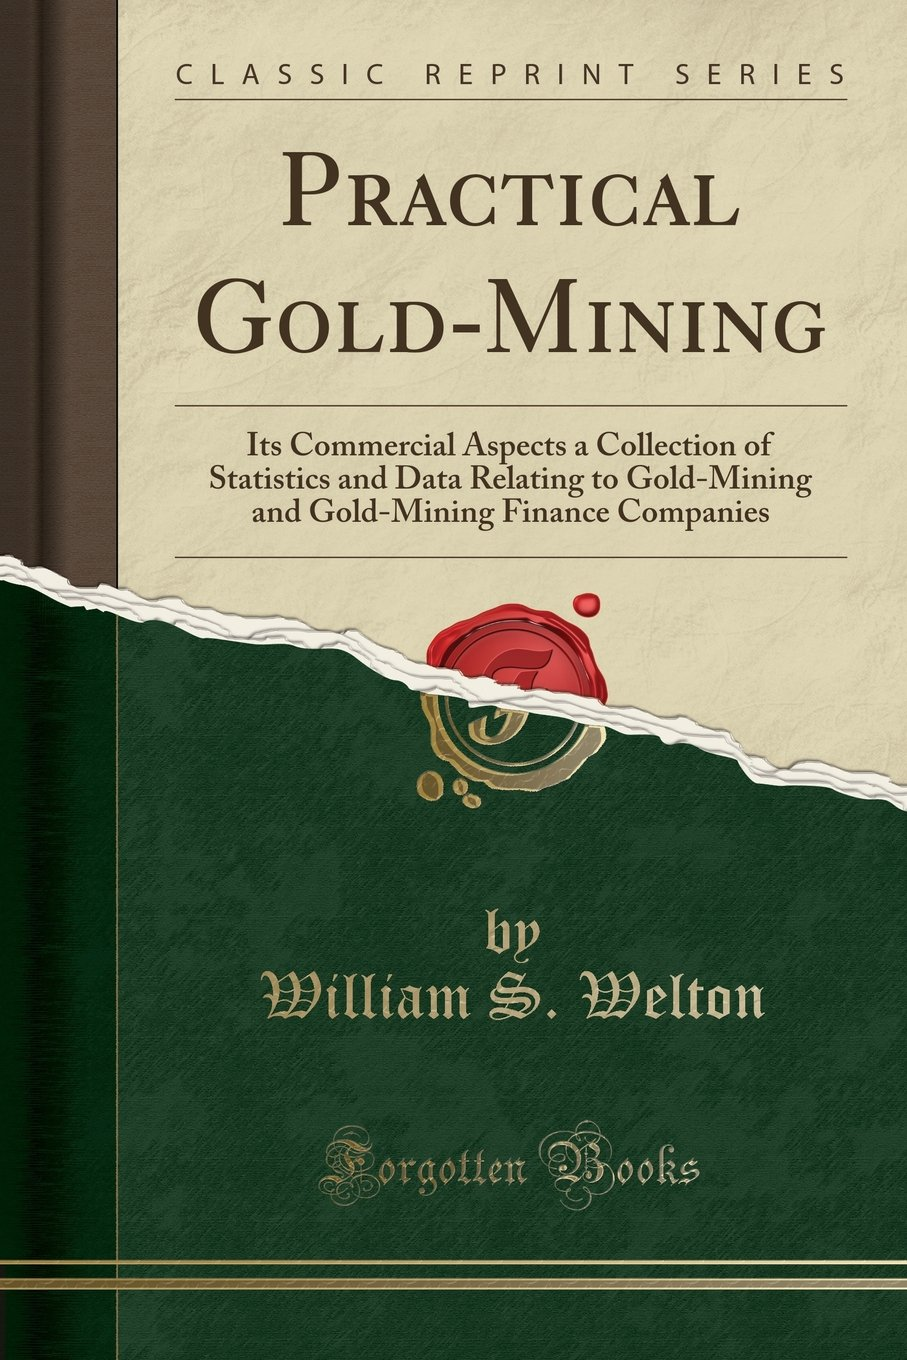 Download Practical Gold-Mining: Its Commercial Aspects a Collection of Statistics and Data Relating to Gold-Mining and Gold-Mining Finance Companies (Classic Reprint) pdf epub